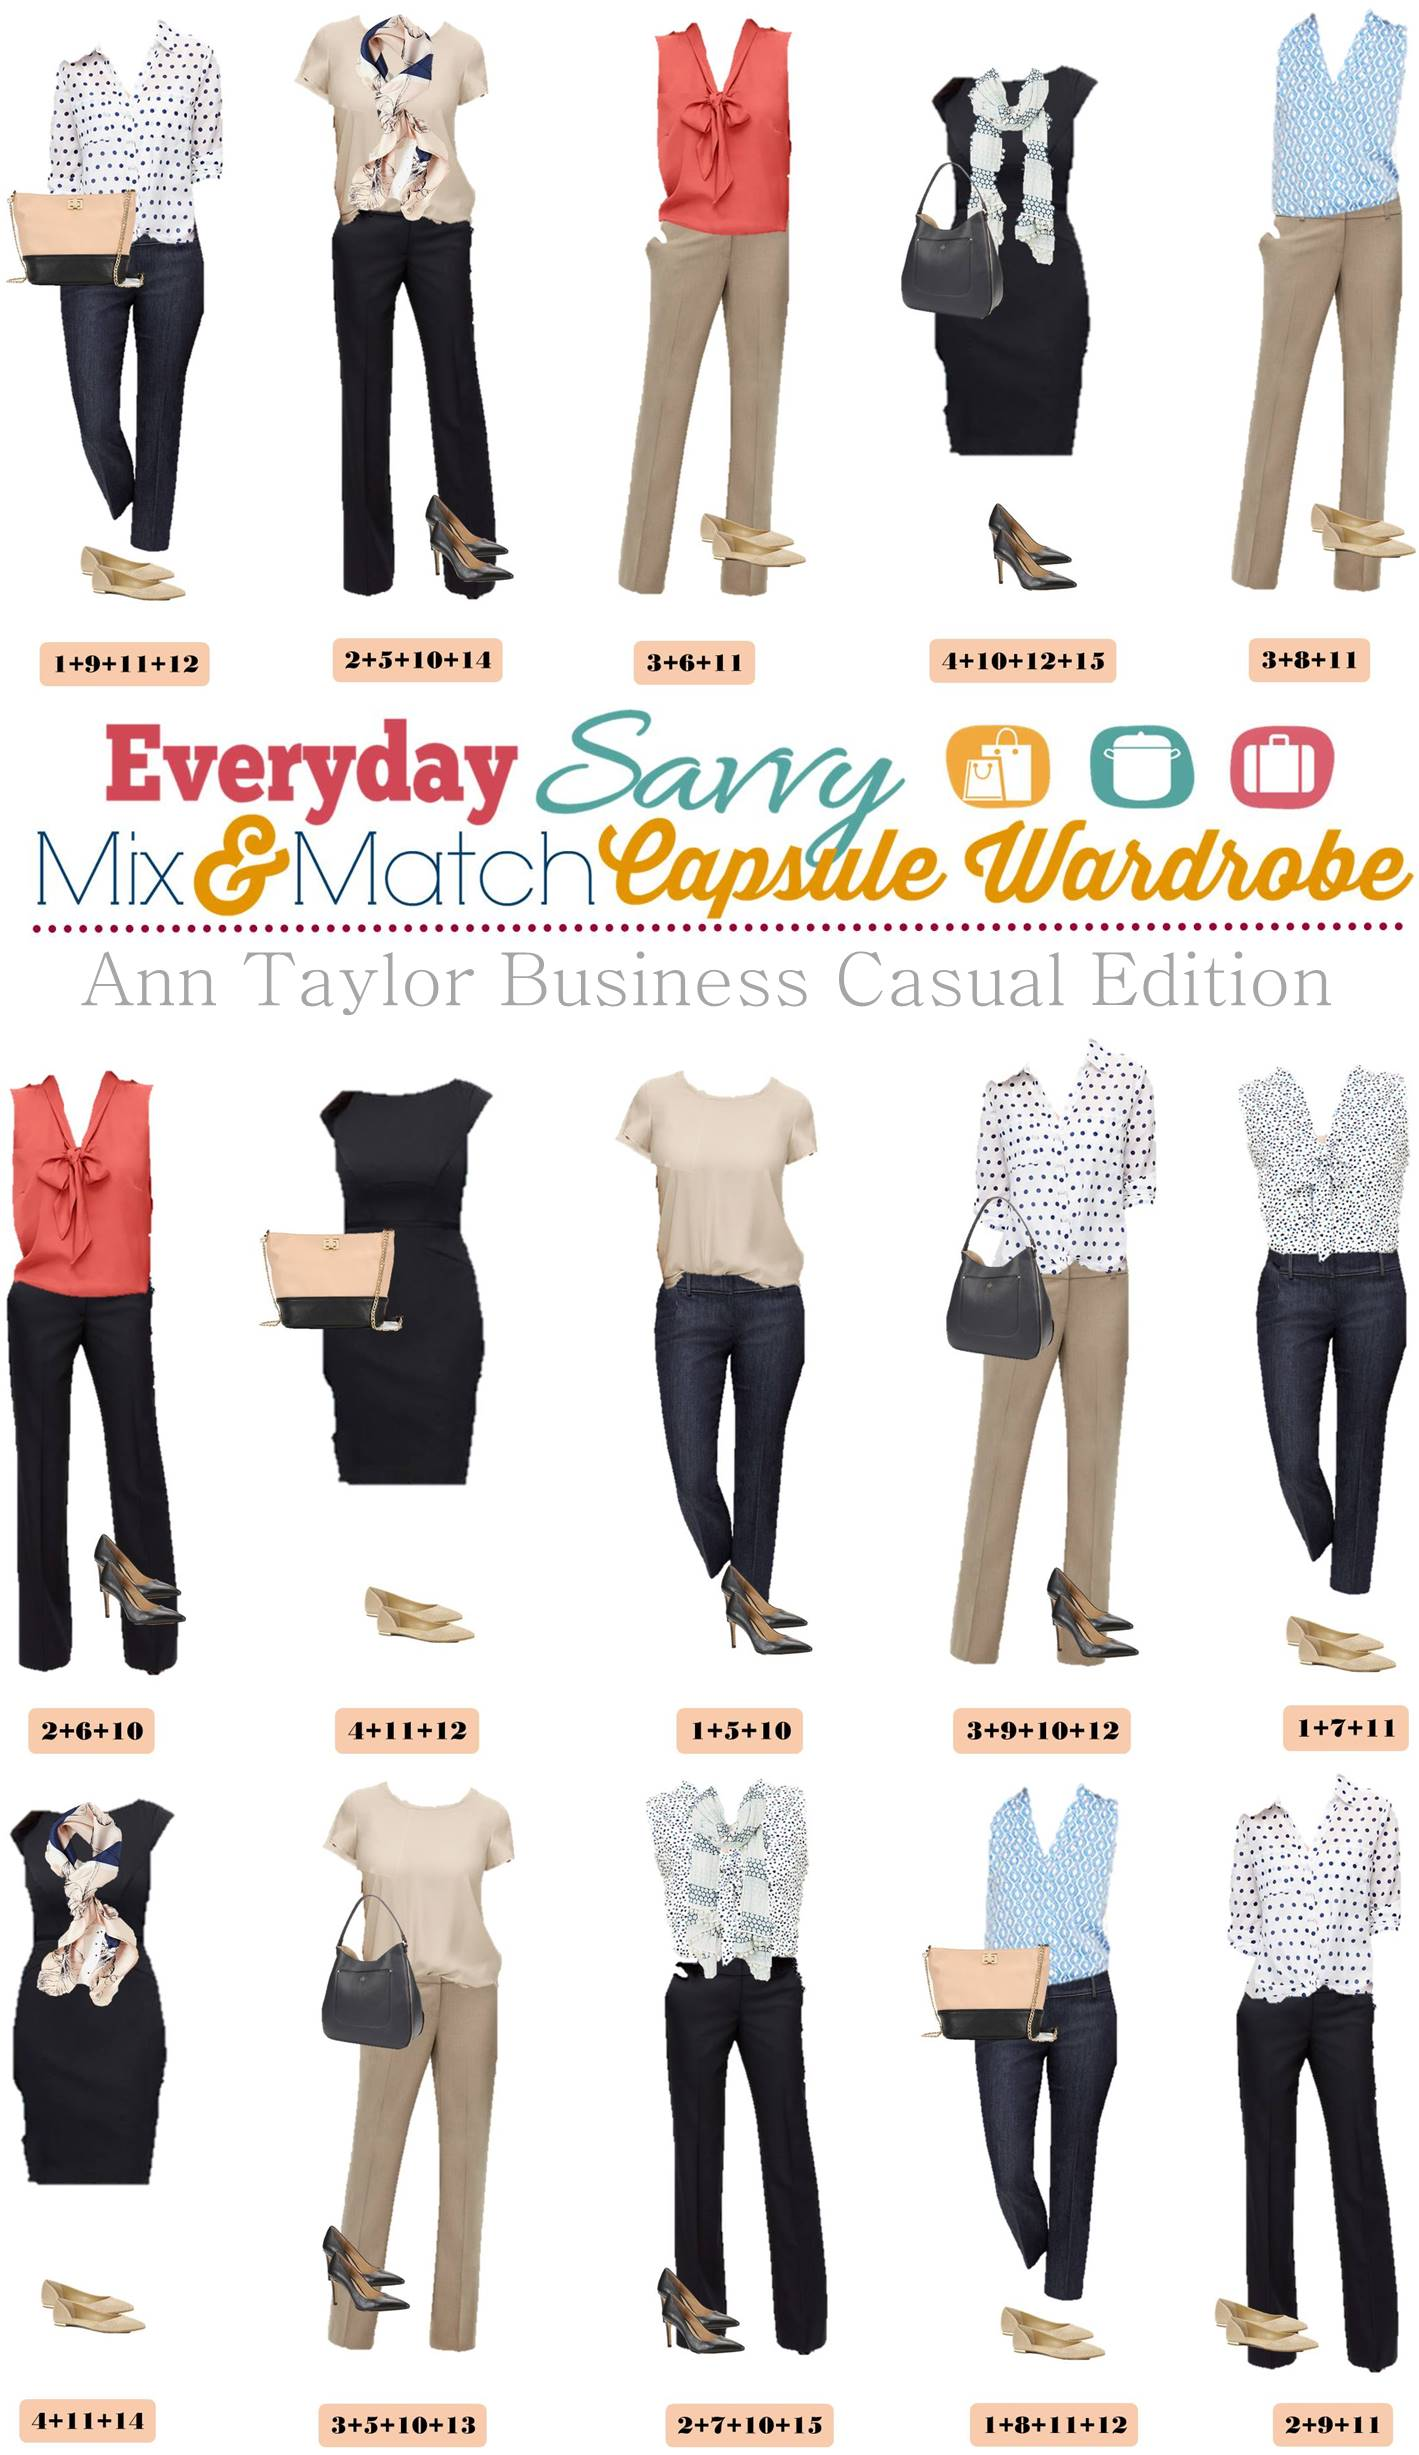 ann taylor business casual capsule wardrobe mix match. Black Bedroom Furniture Sets. Home Design Ideas